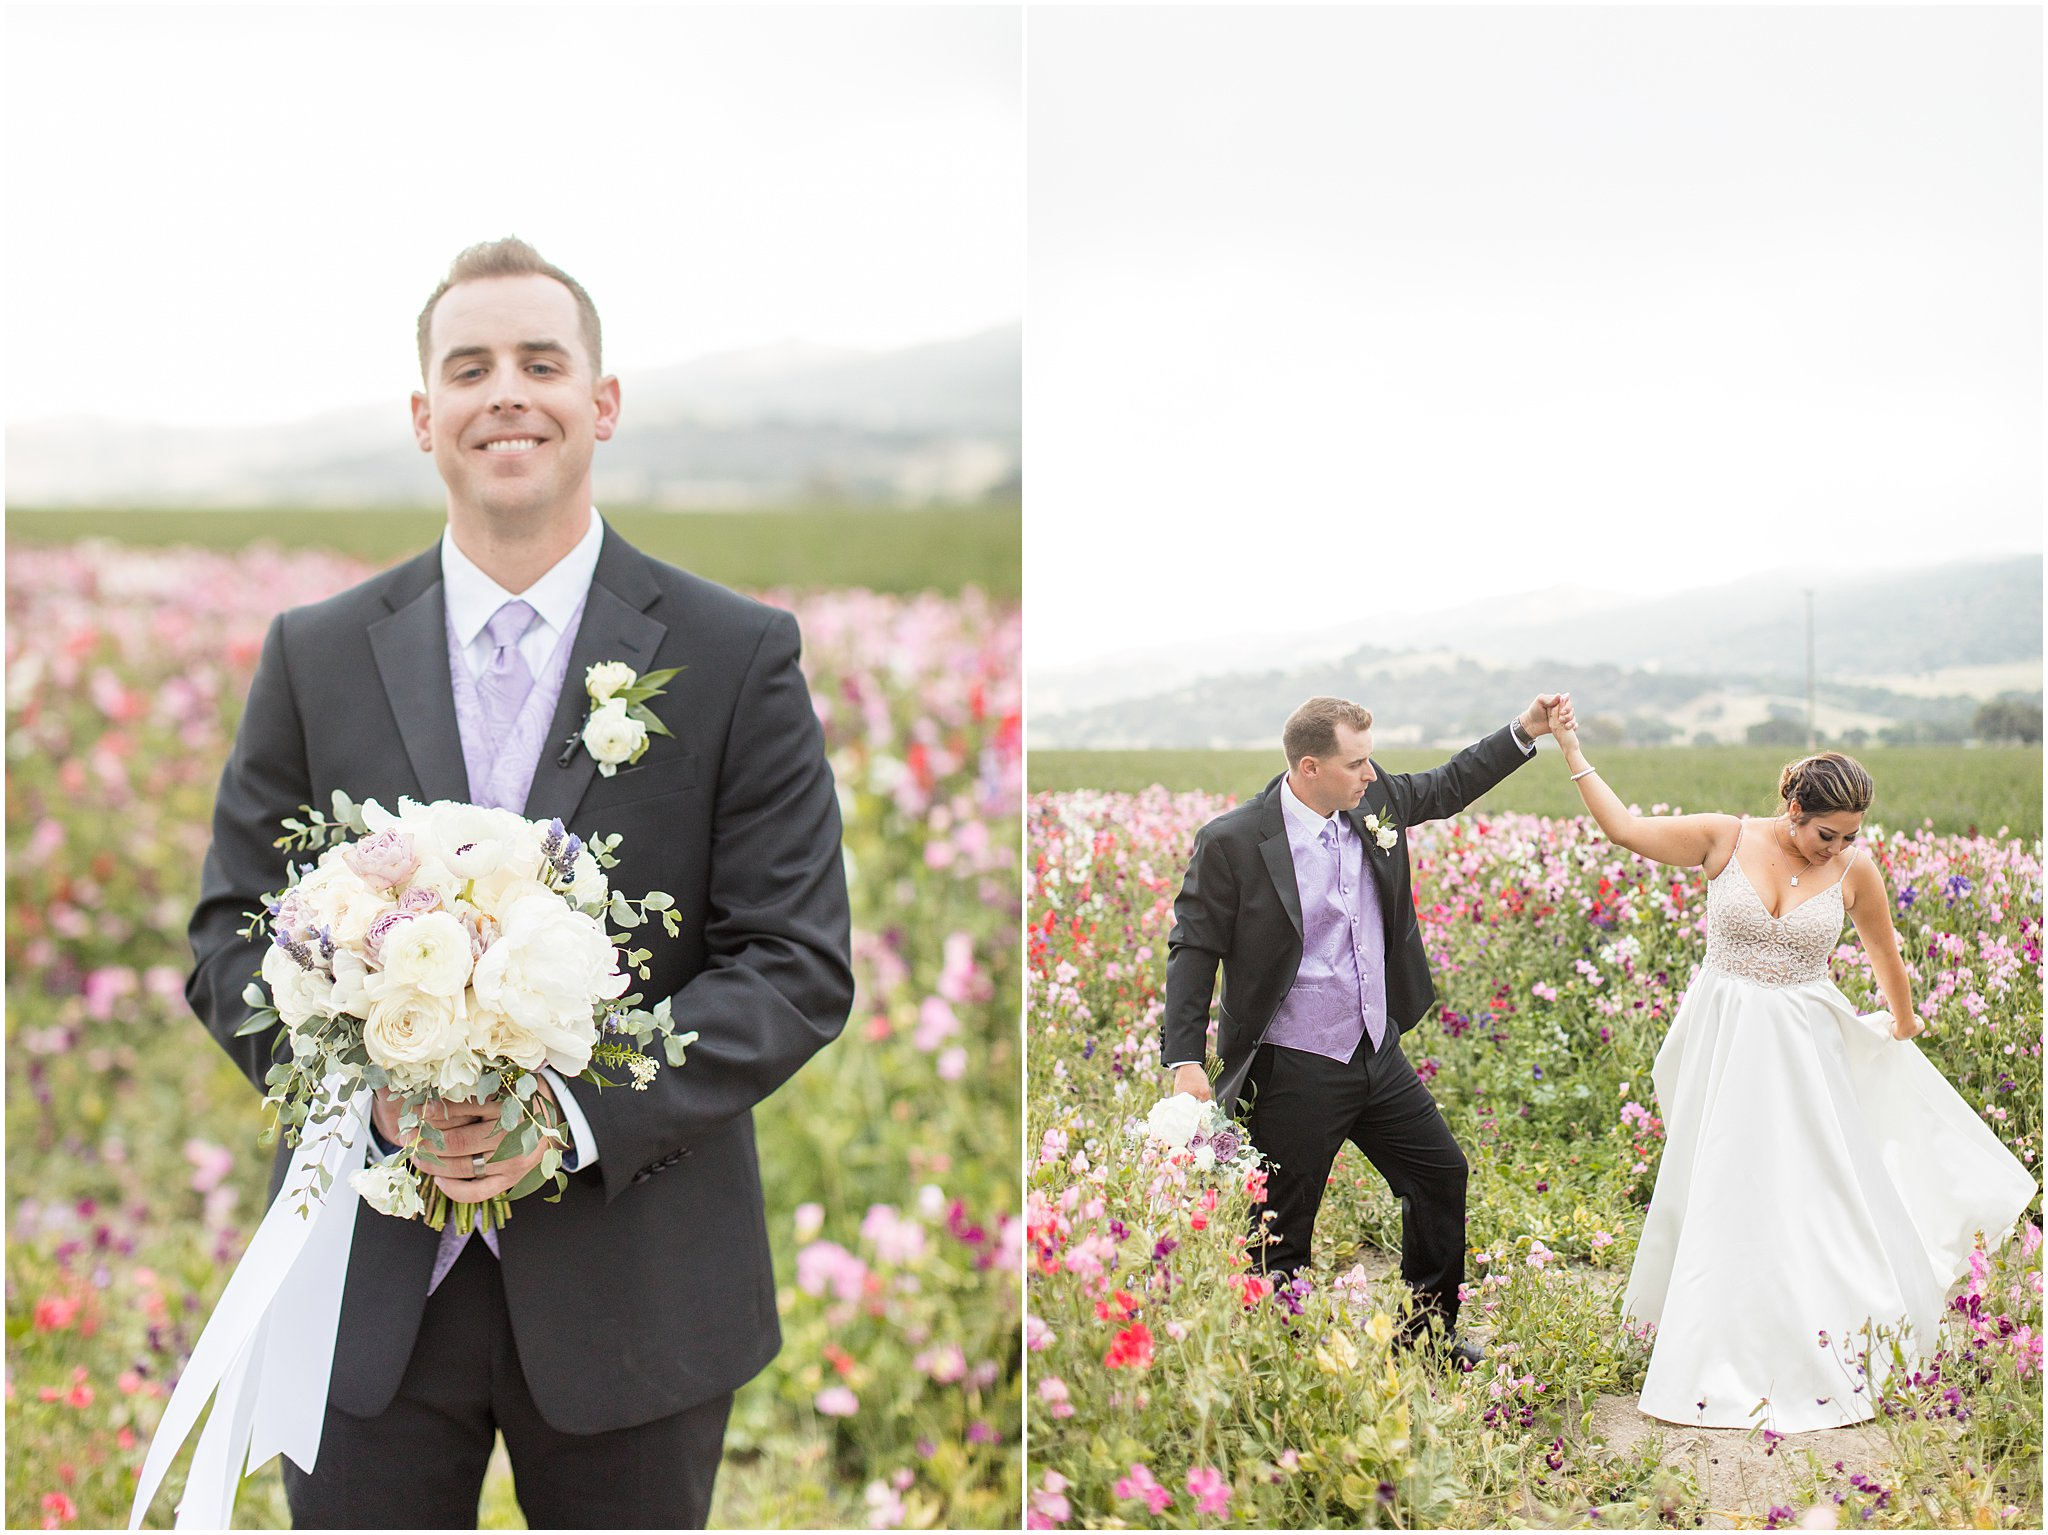 2019 wedding san juan bautista hacienda de leal vineyards bay area wedding photographer_0079.jpg